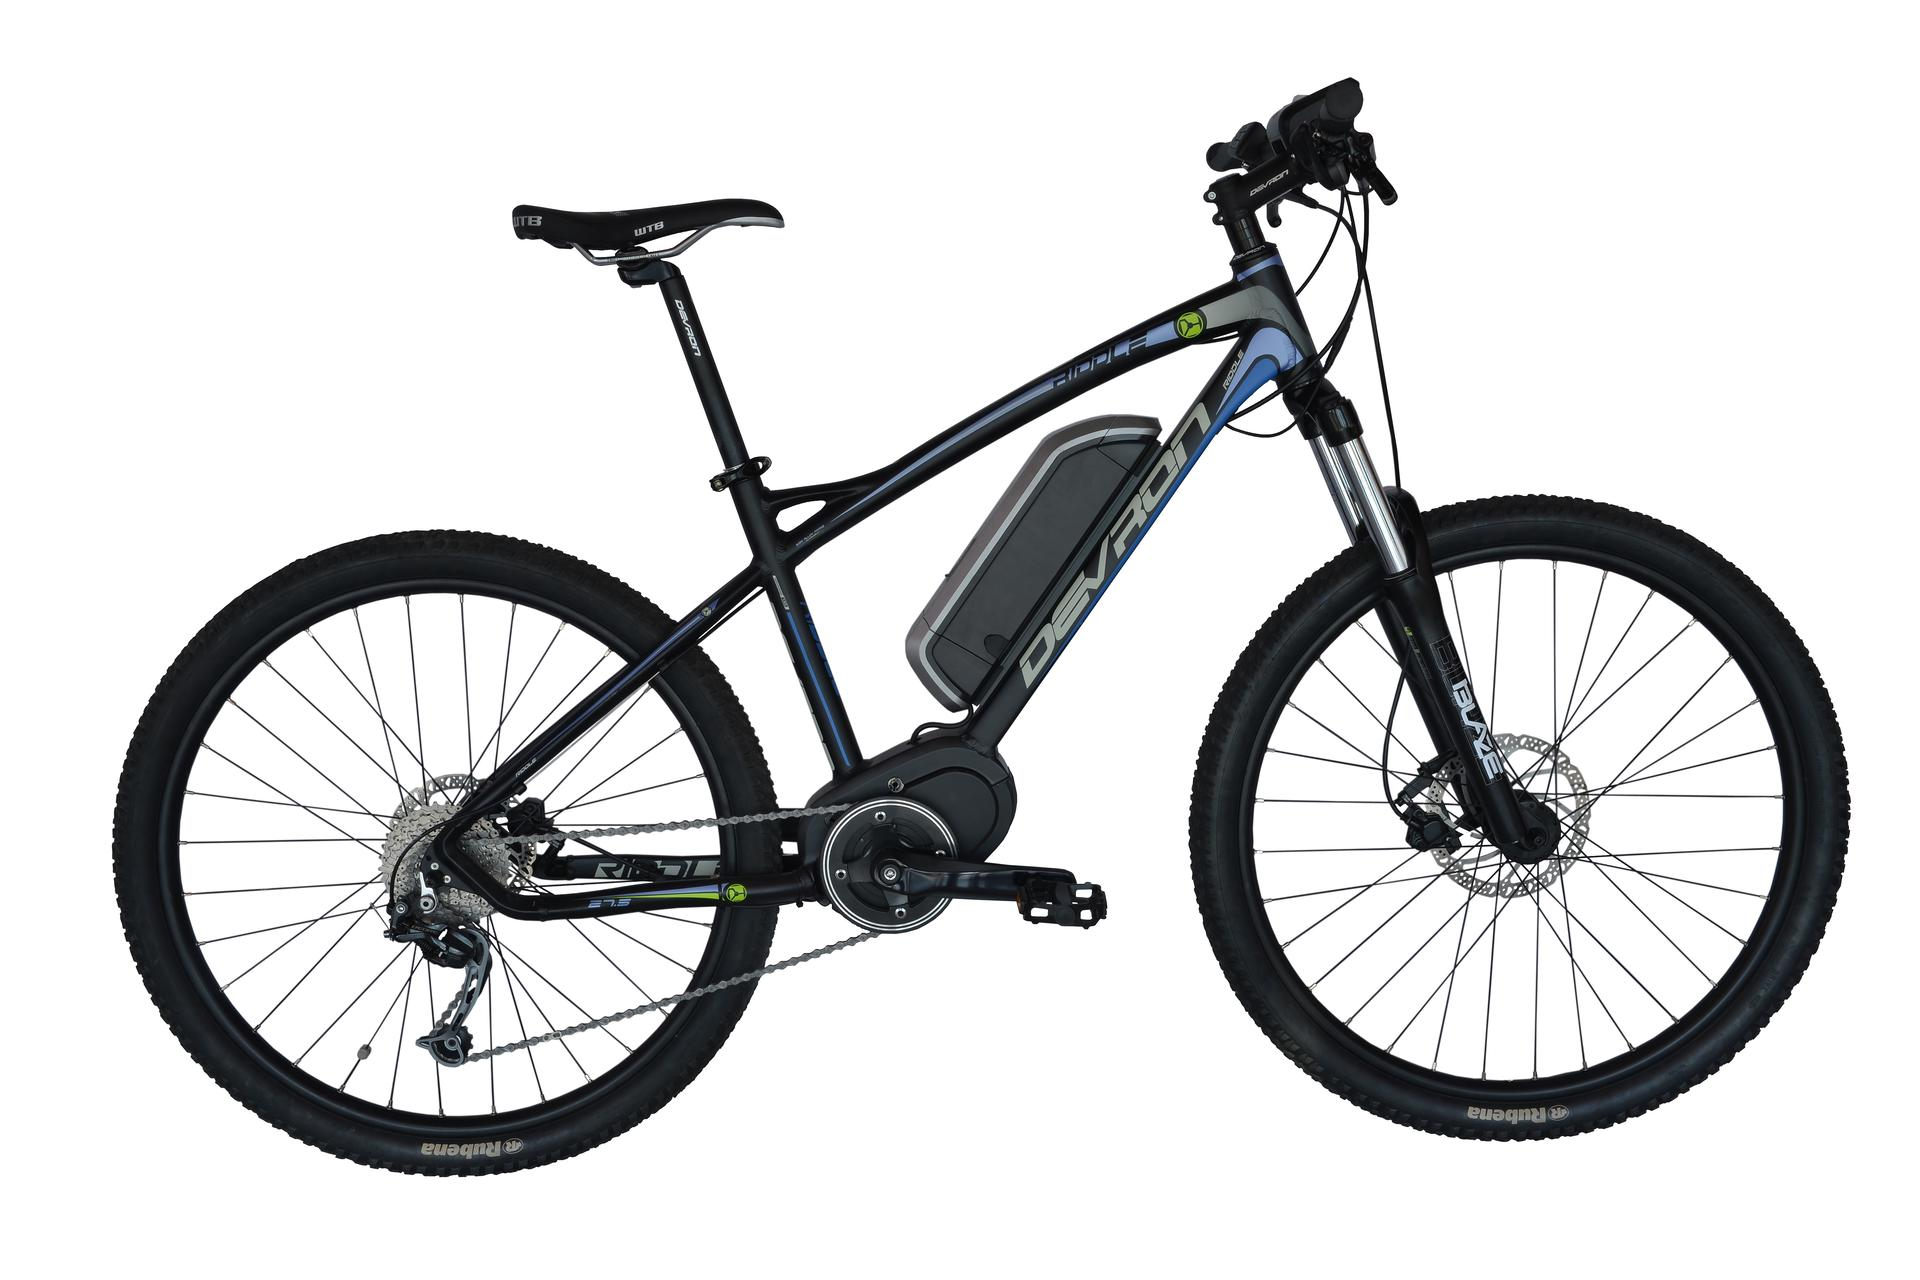 Mountain bike elettrica Devron 27225 495 mm Race Black - 27